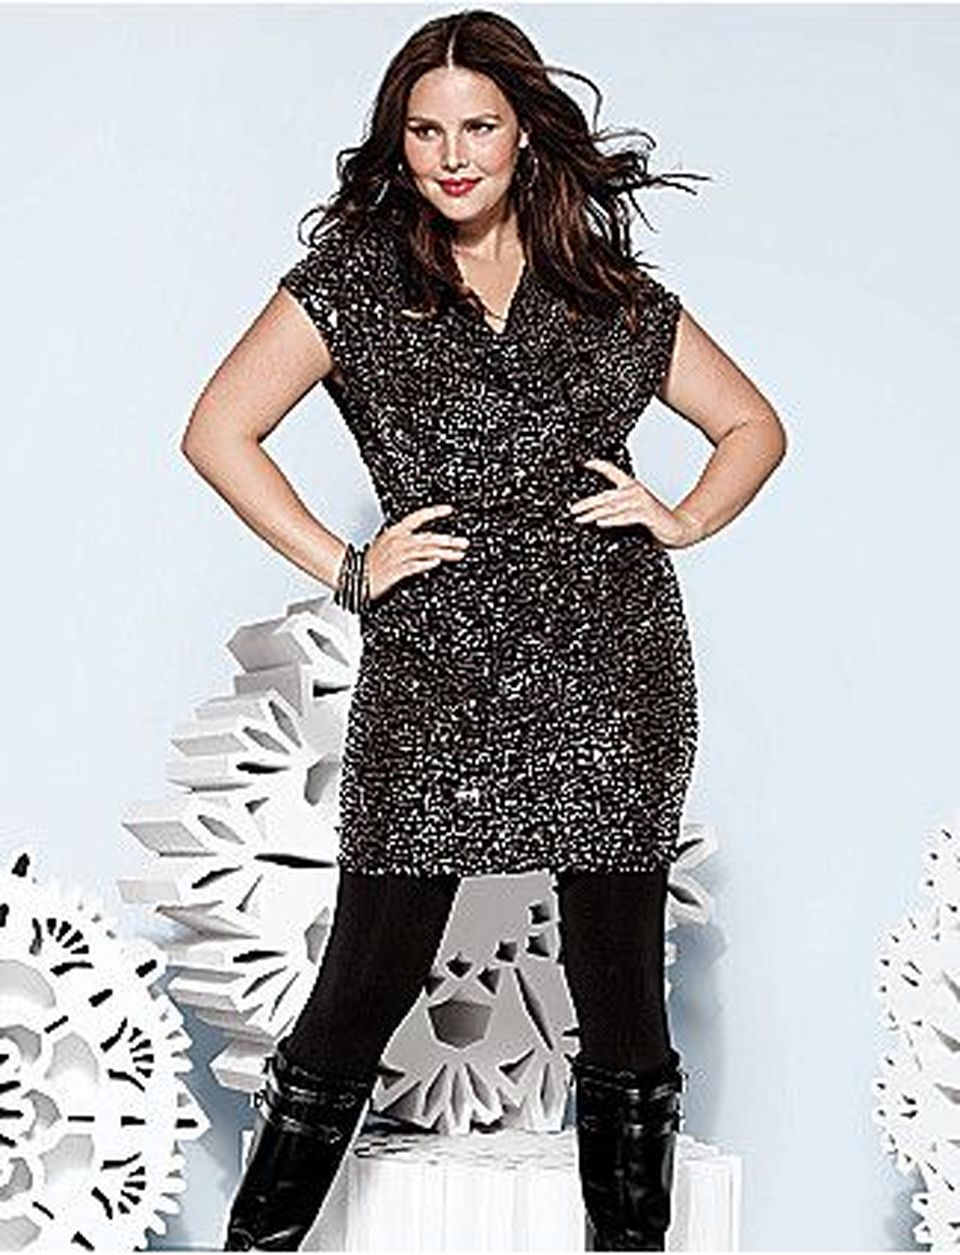 Sequin dress for new year eve party and night out 6